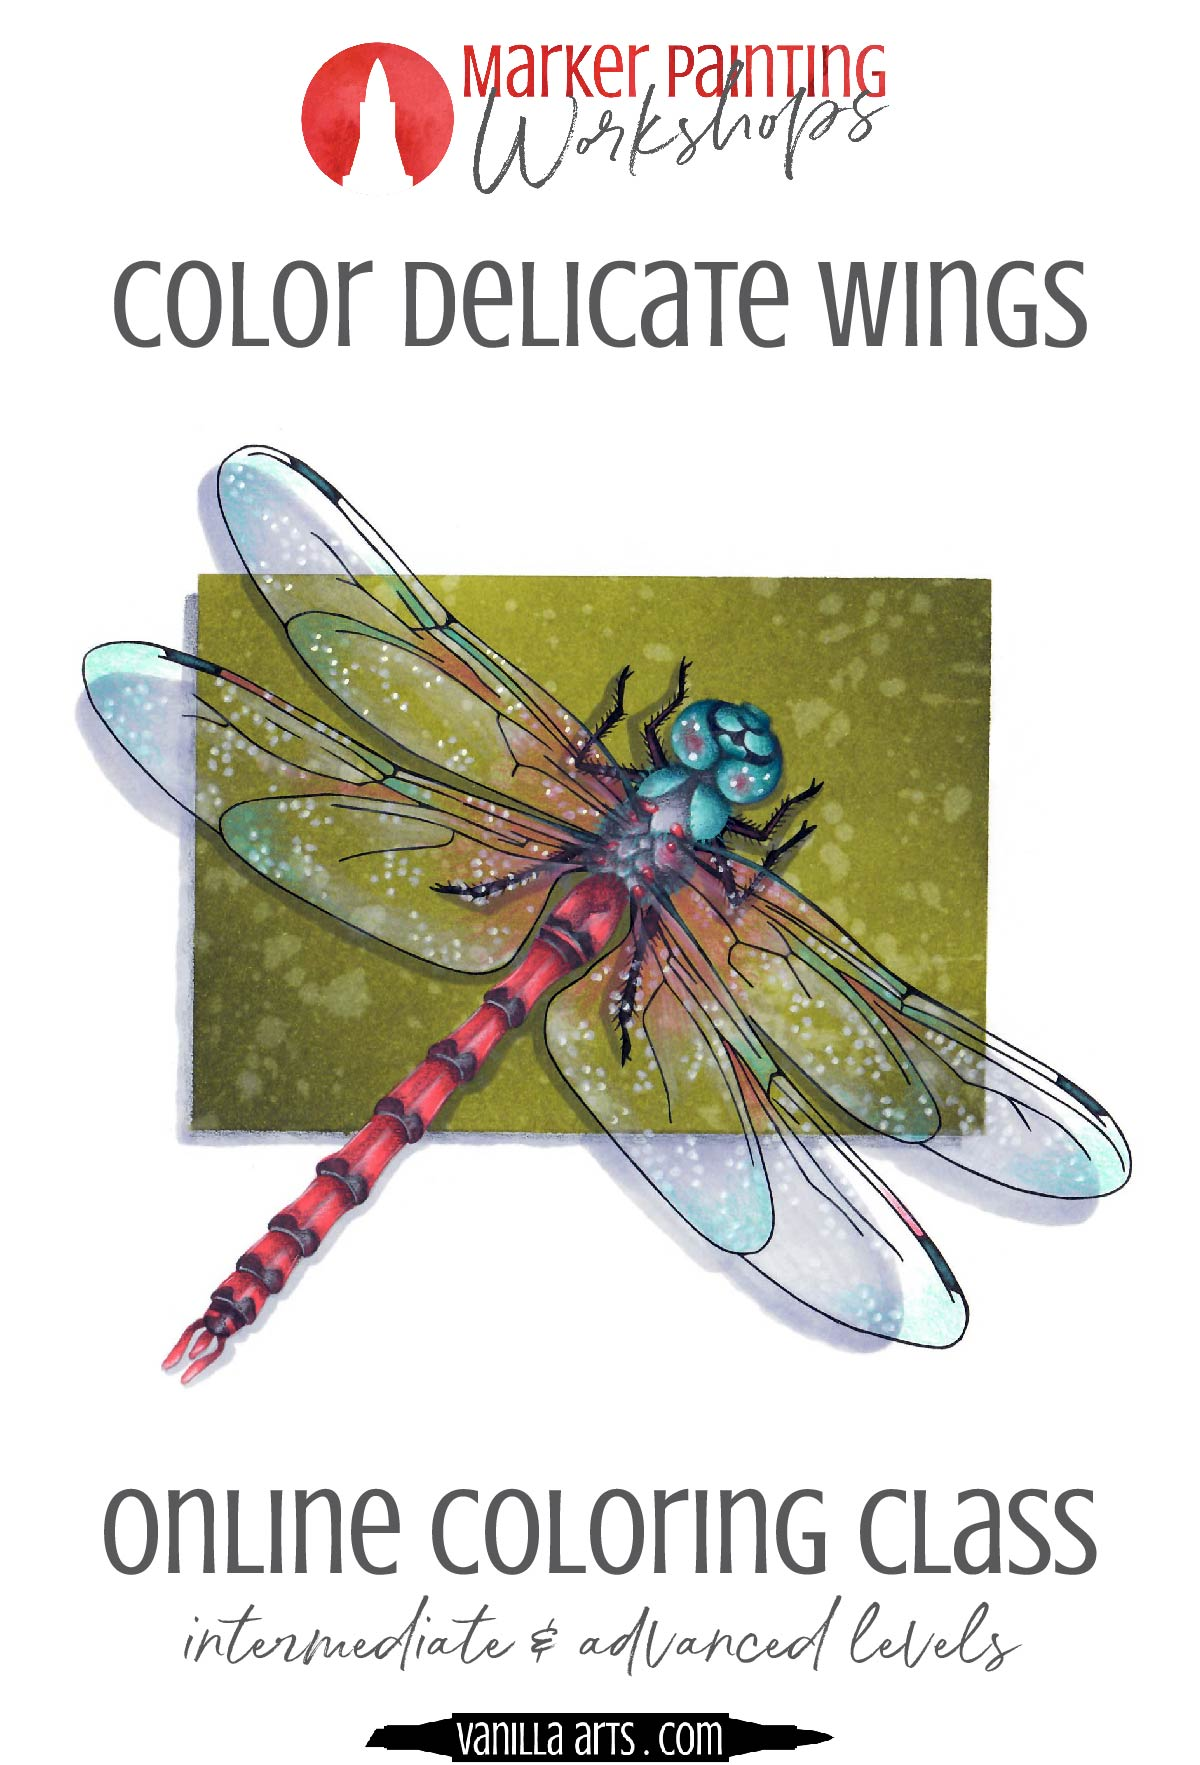 Learn to color transparent or translucent items without the use of a blue marker. Copic Marker blue tutorials lead to fake looking water, glass, and wings because those objects aren't blue! | VanillaArts.com | #copicmarker #coloredpencil #realisticcoloring #howtocolor